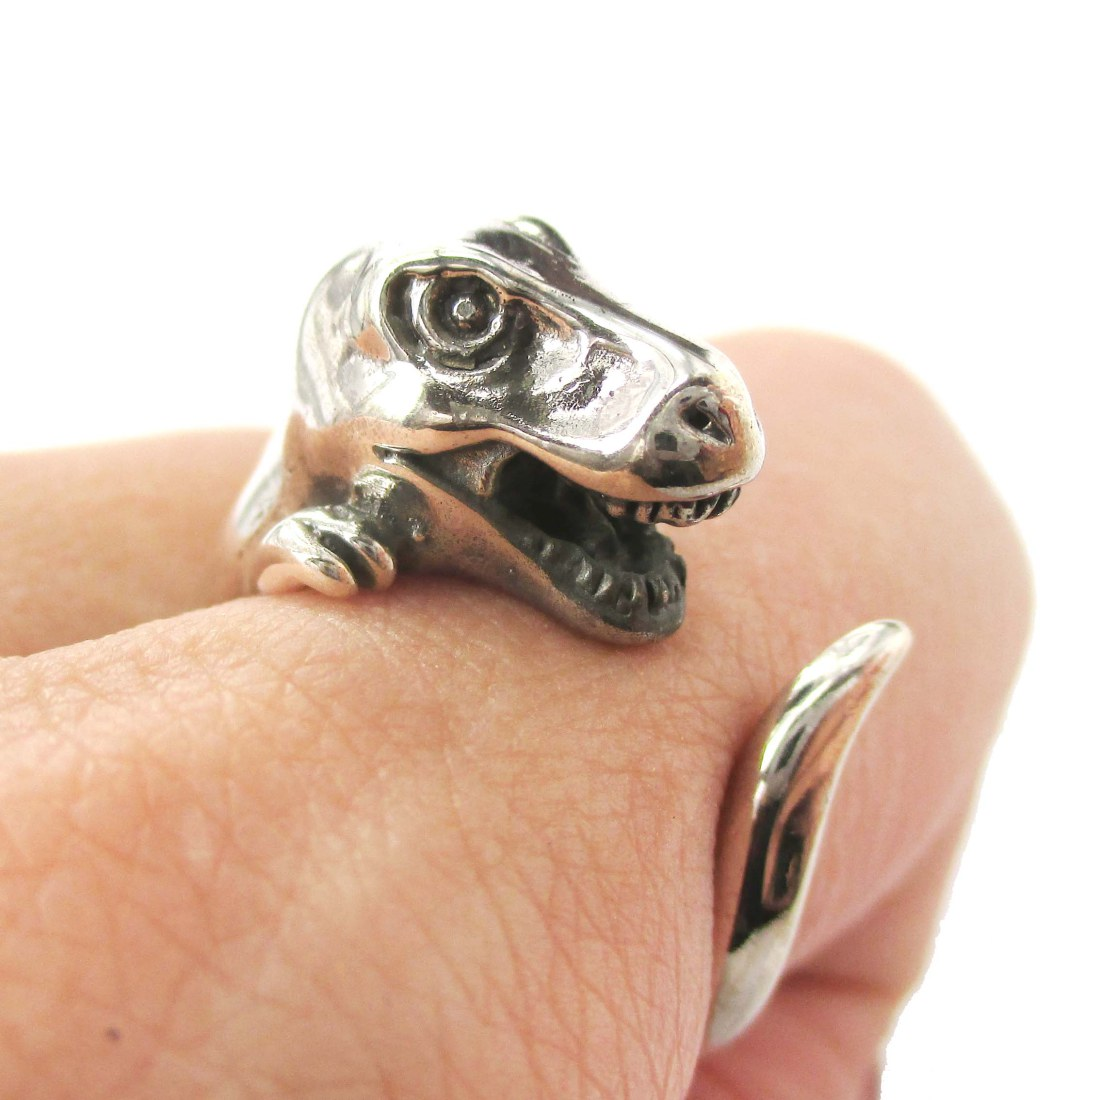 will power style with rings dinosaur your tumblr post fierce day